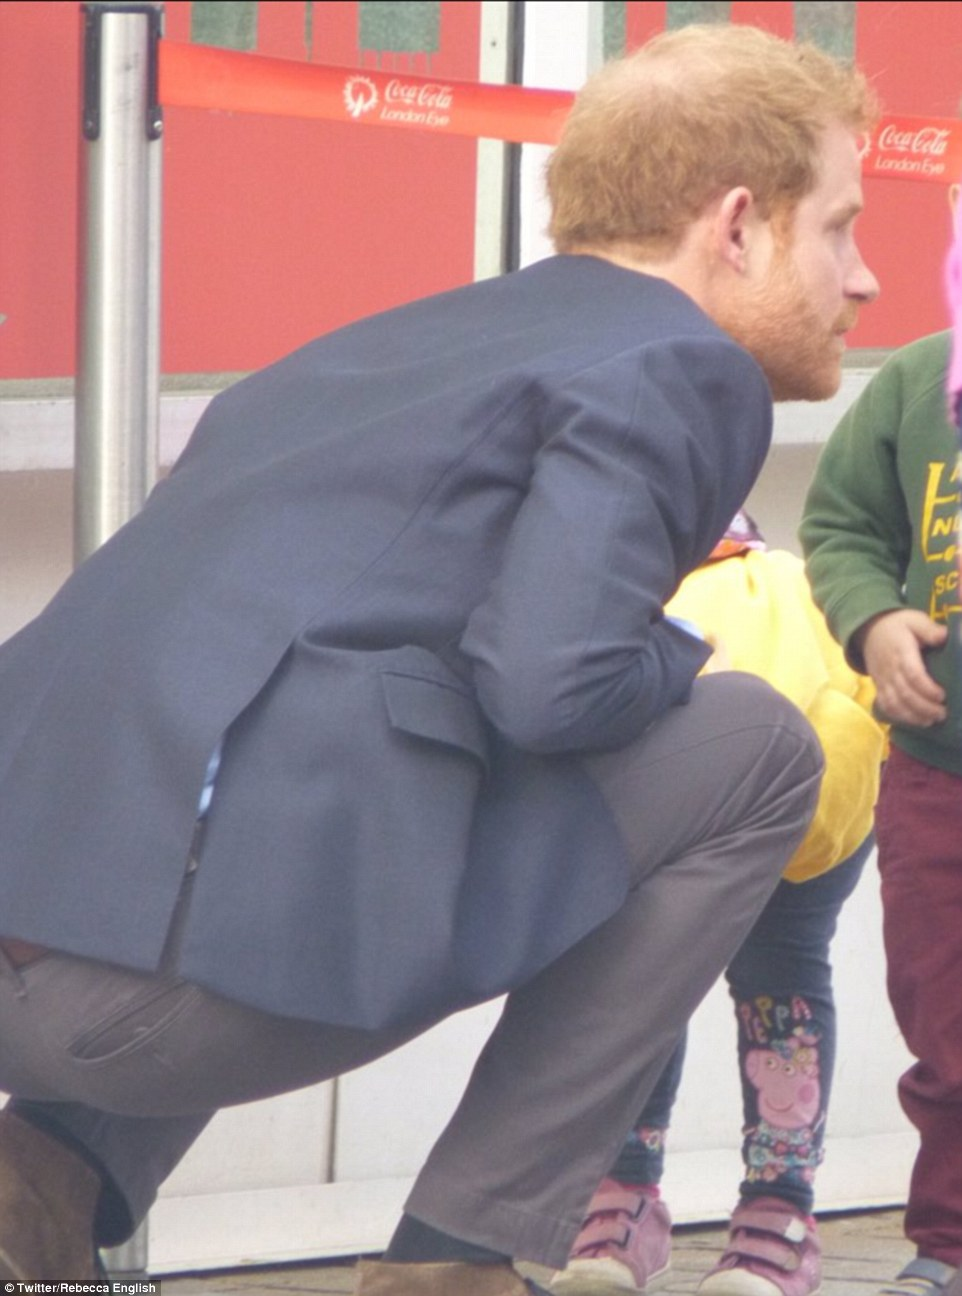 Youngsters from Abacus Nursery were eager to tell Prince Harry they had seen crocodiles on their visit to The Aquarium